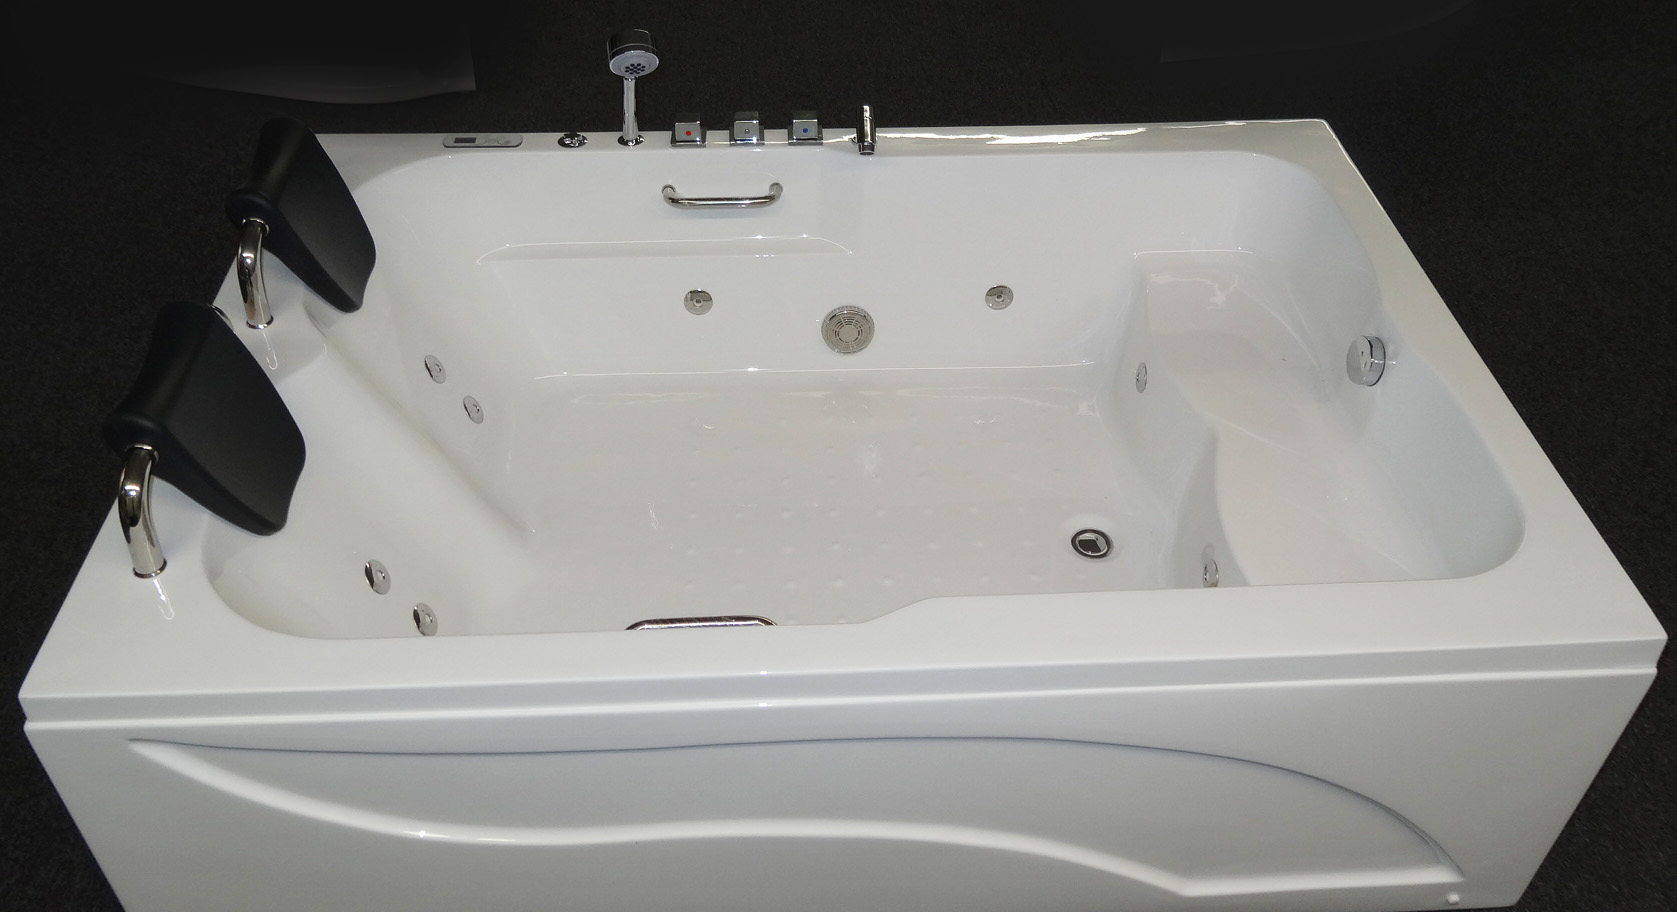 2 PERSON Deluxe Computerized Whirlpool Jetted Bathtubs